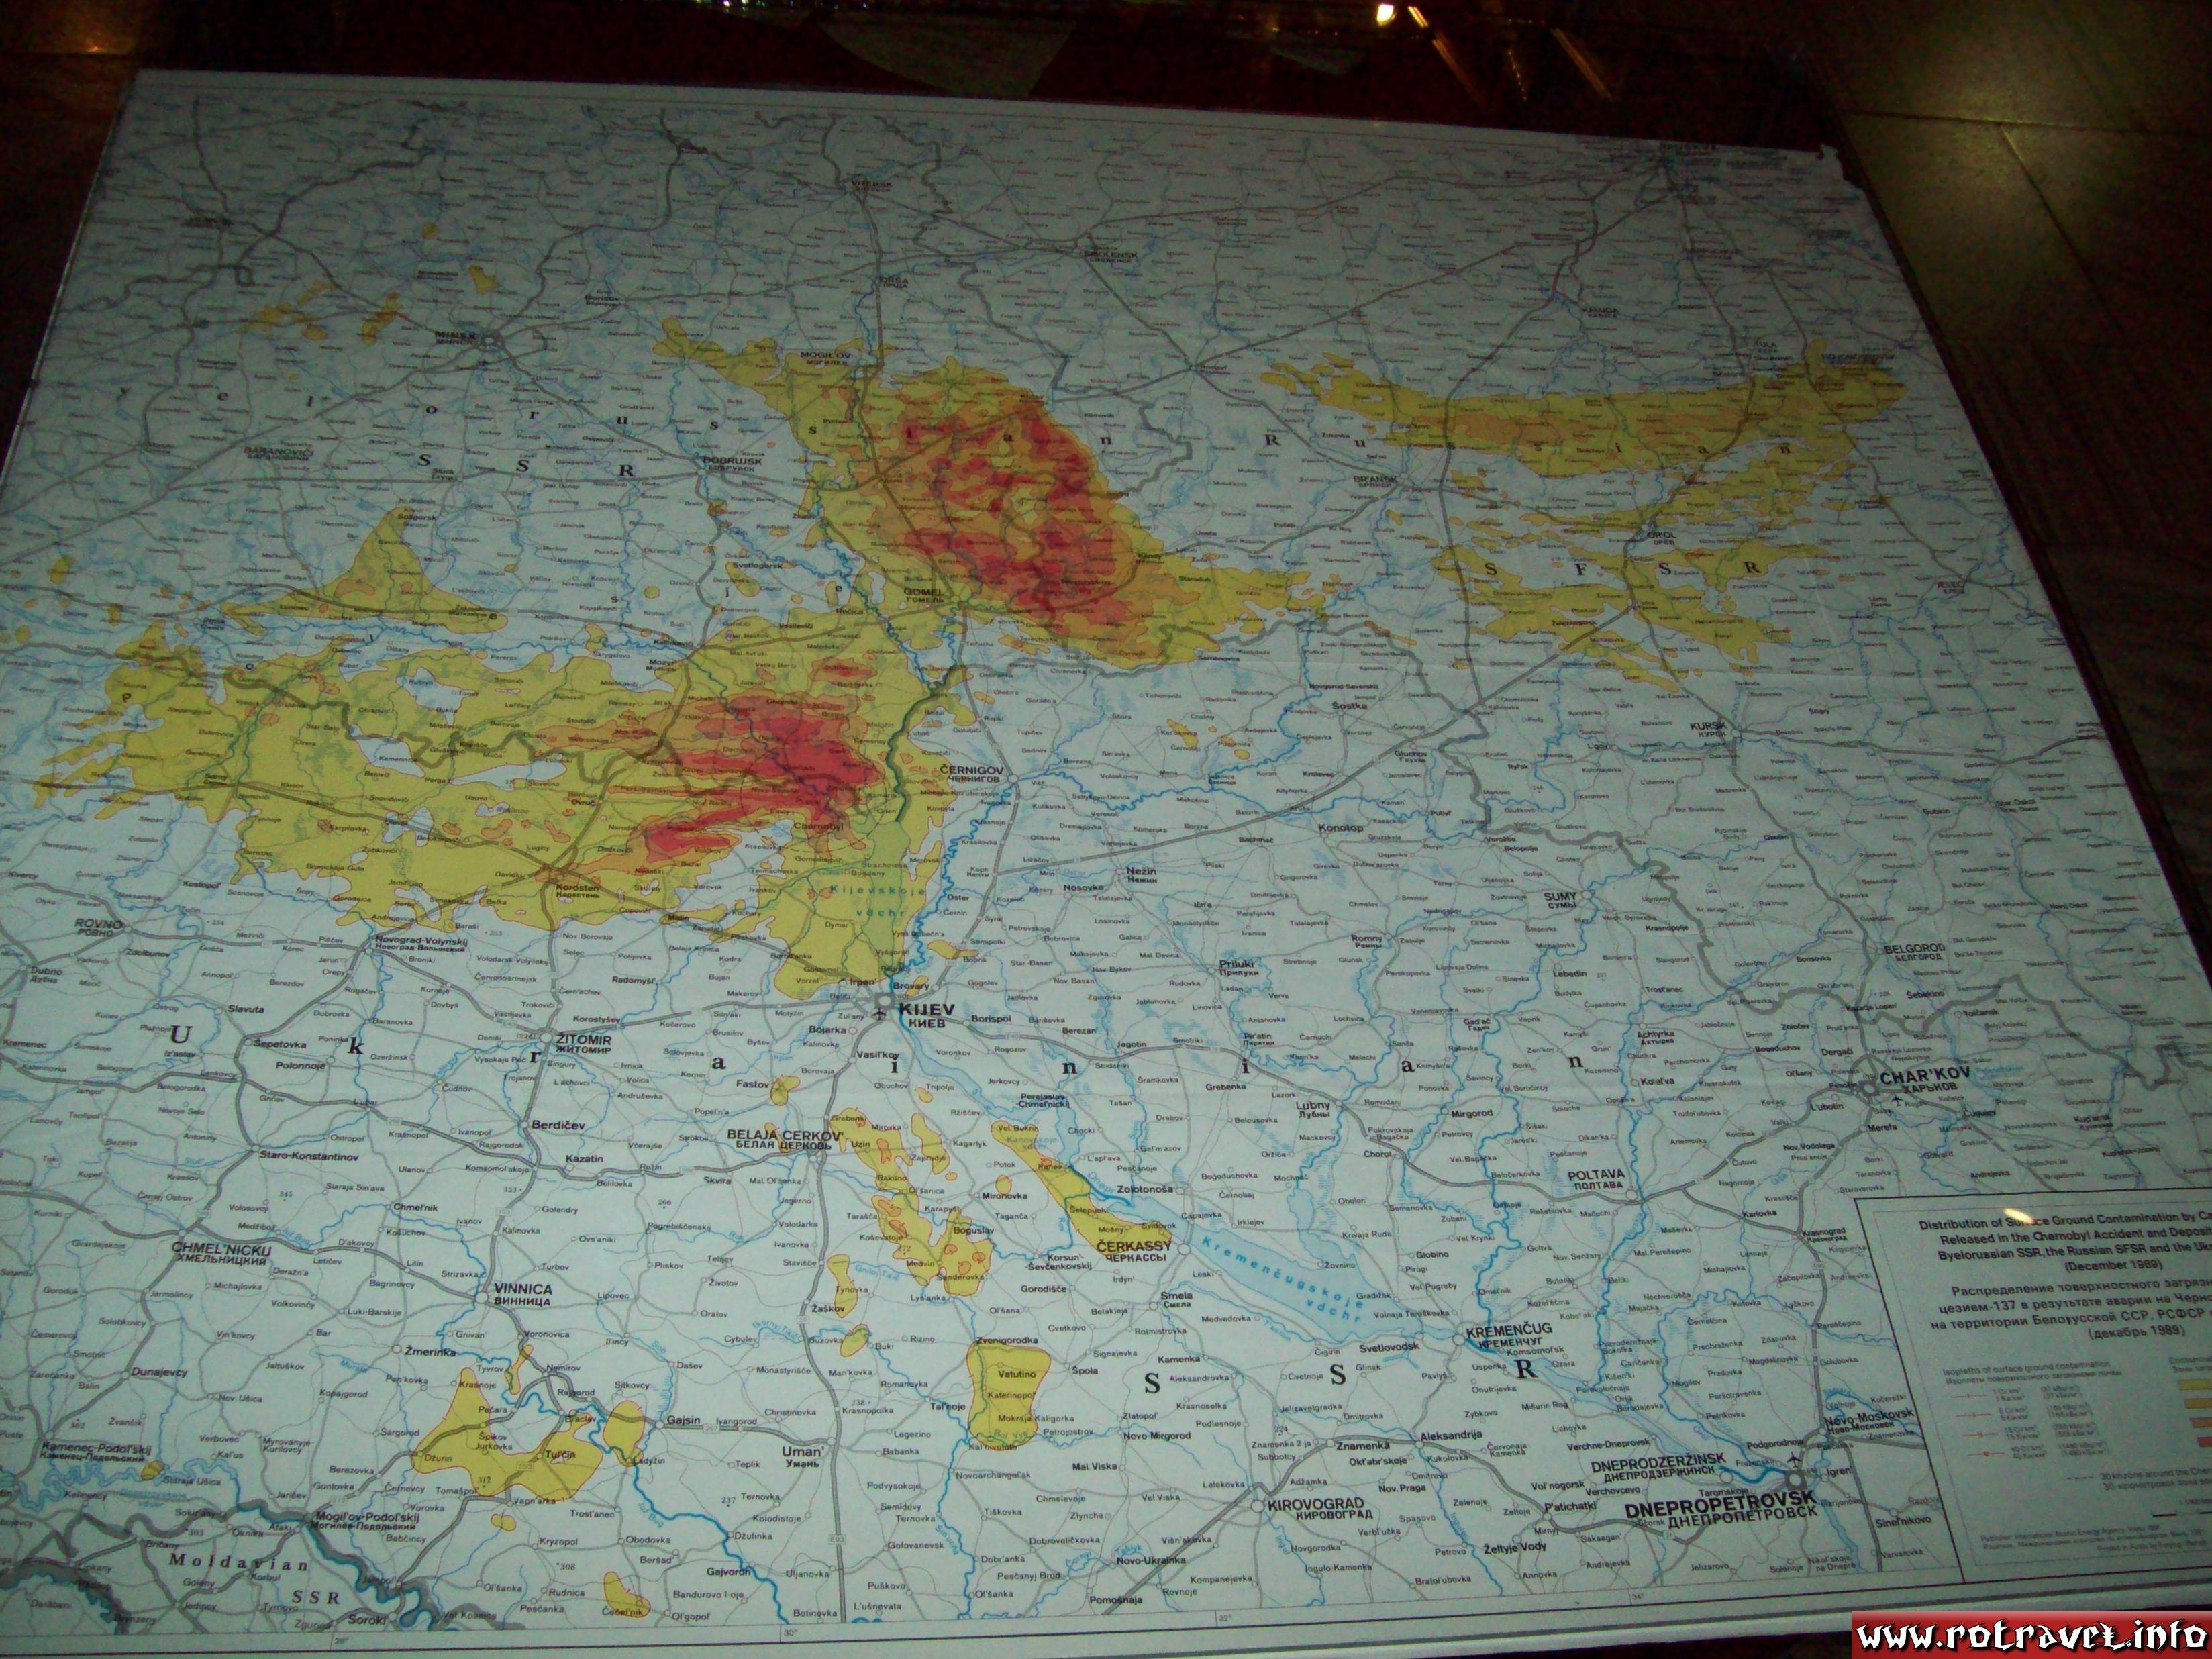 A map with radioactive contamination after the Chernobyl disaster